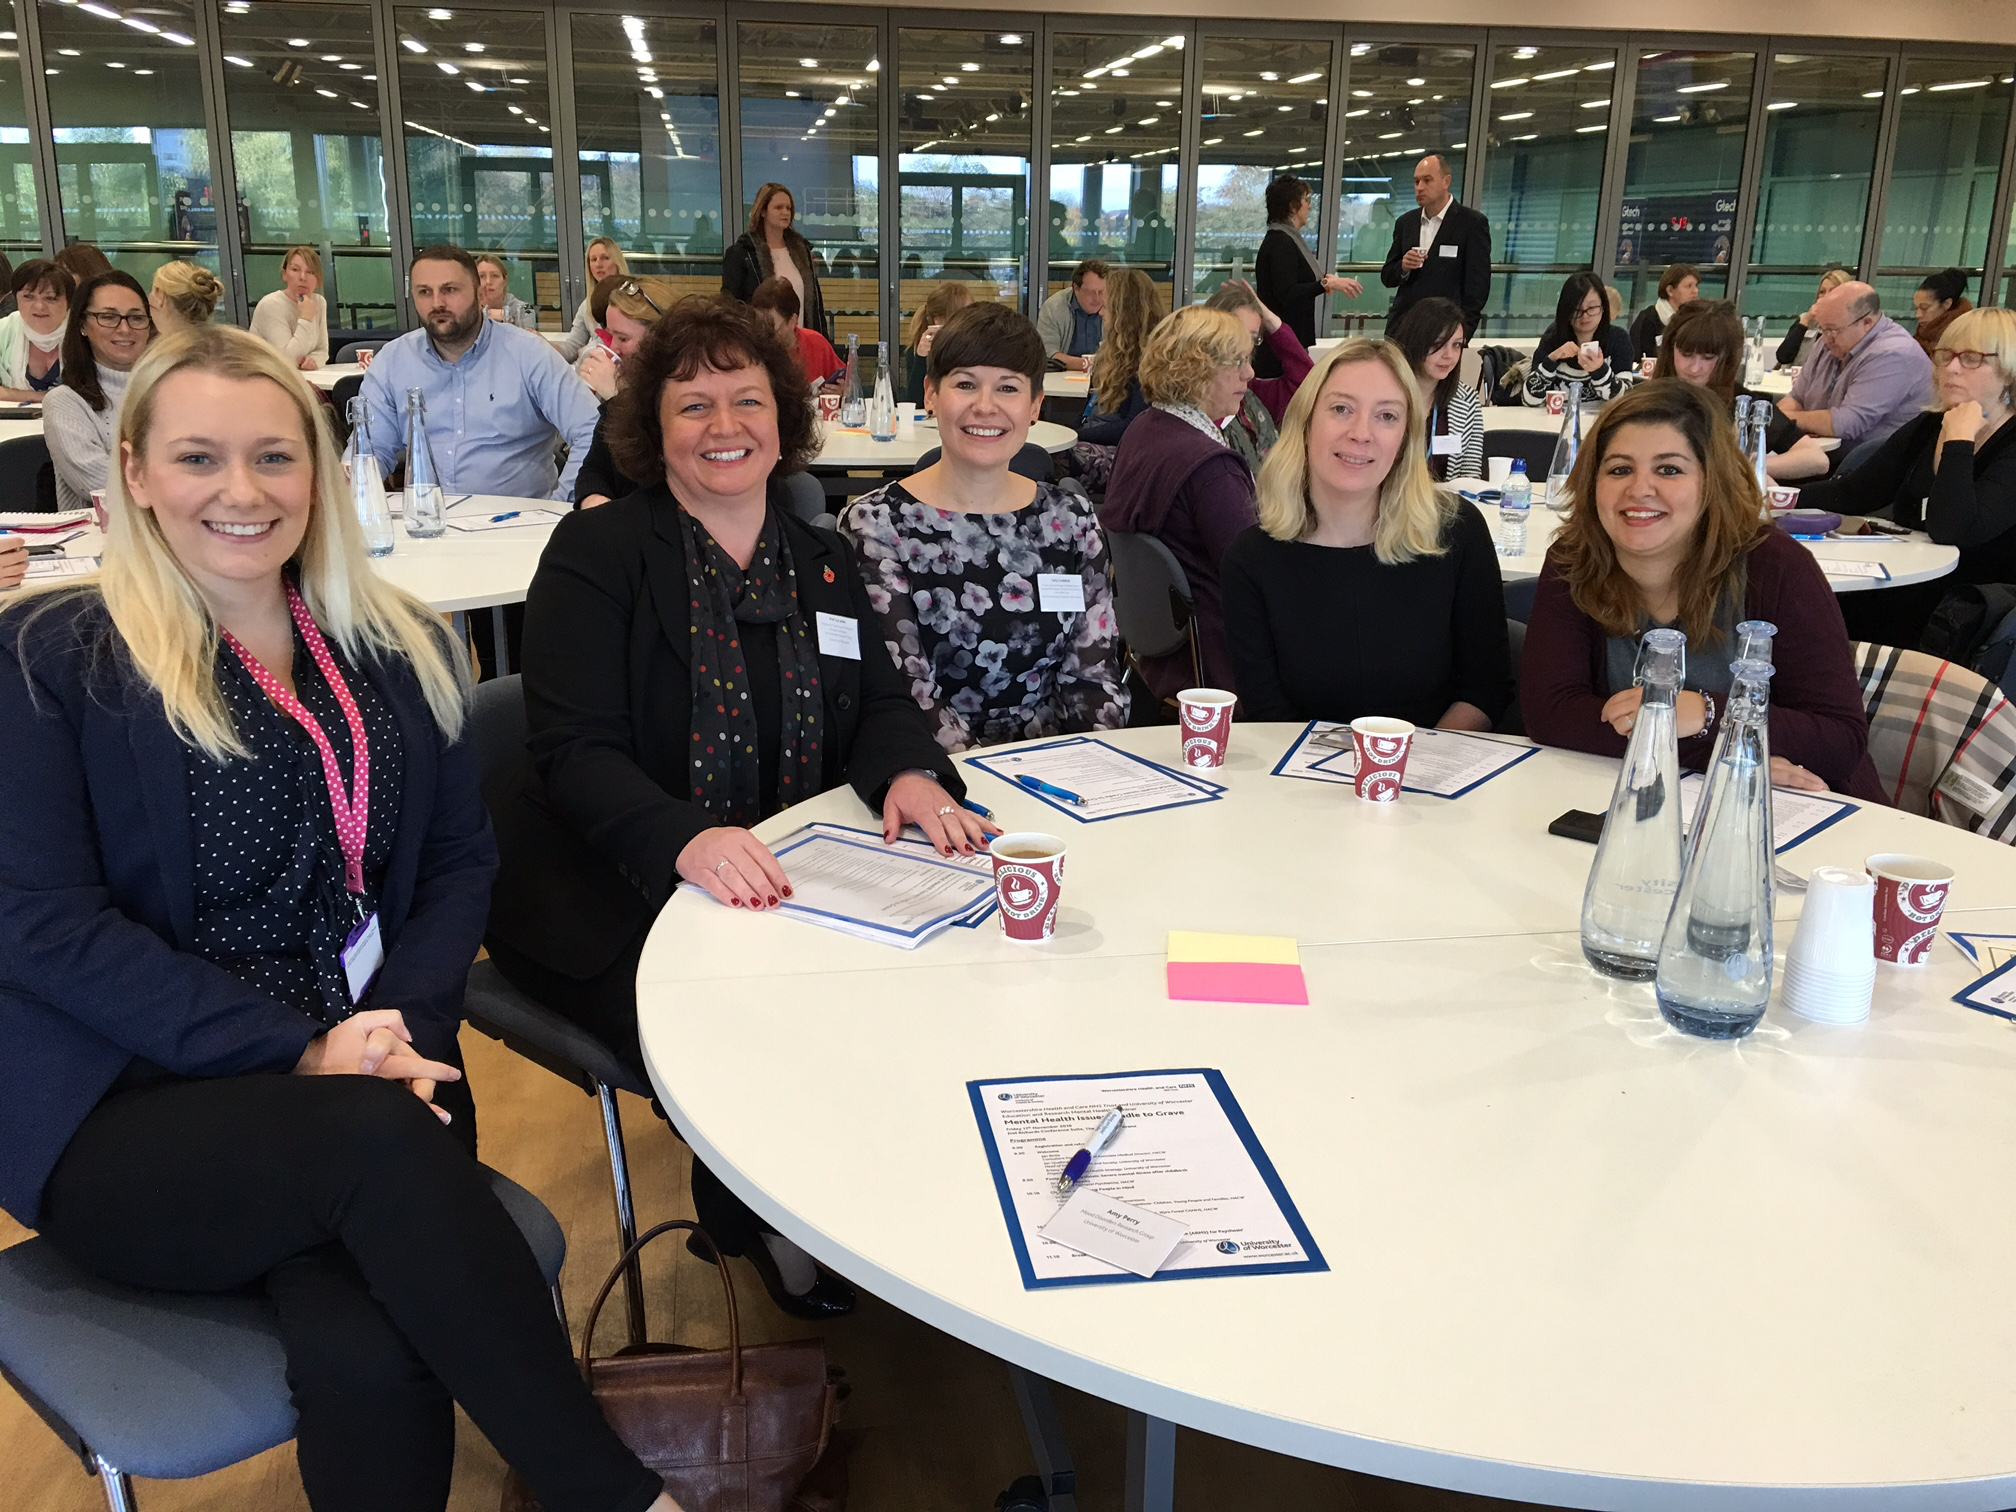 Members of BDRN at the seminar [Amy Perry (L), Lisa Jones (second L), Katherine Gordon-Smith (second R)], with visiting PhD student Francesca Serra (R) and Carly Craddock (centre), Research Delivery Manager with the NHS Clinical Research Network.